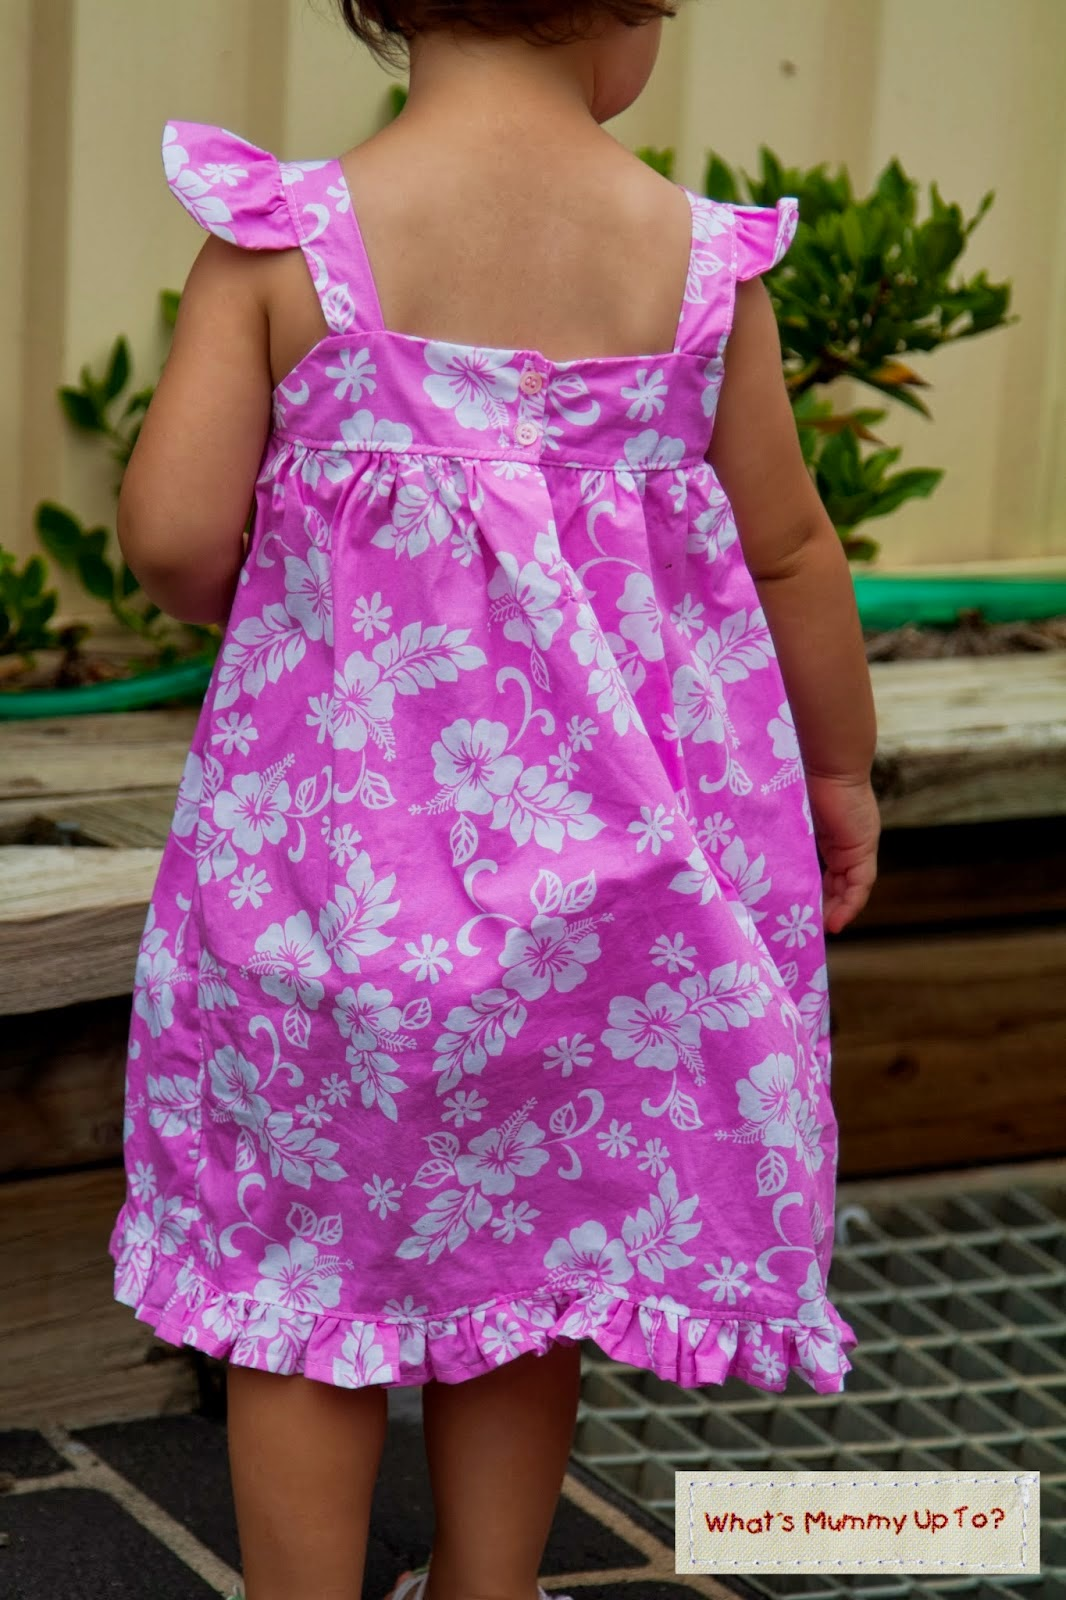 http://whatsmummyupto.blogspot.com.au/2014/03/tutorial-summer-frills-dress.html